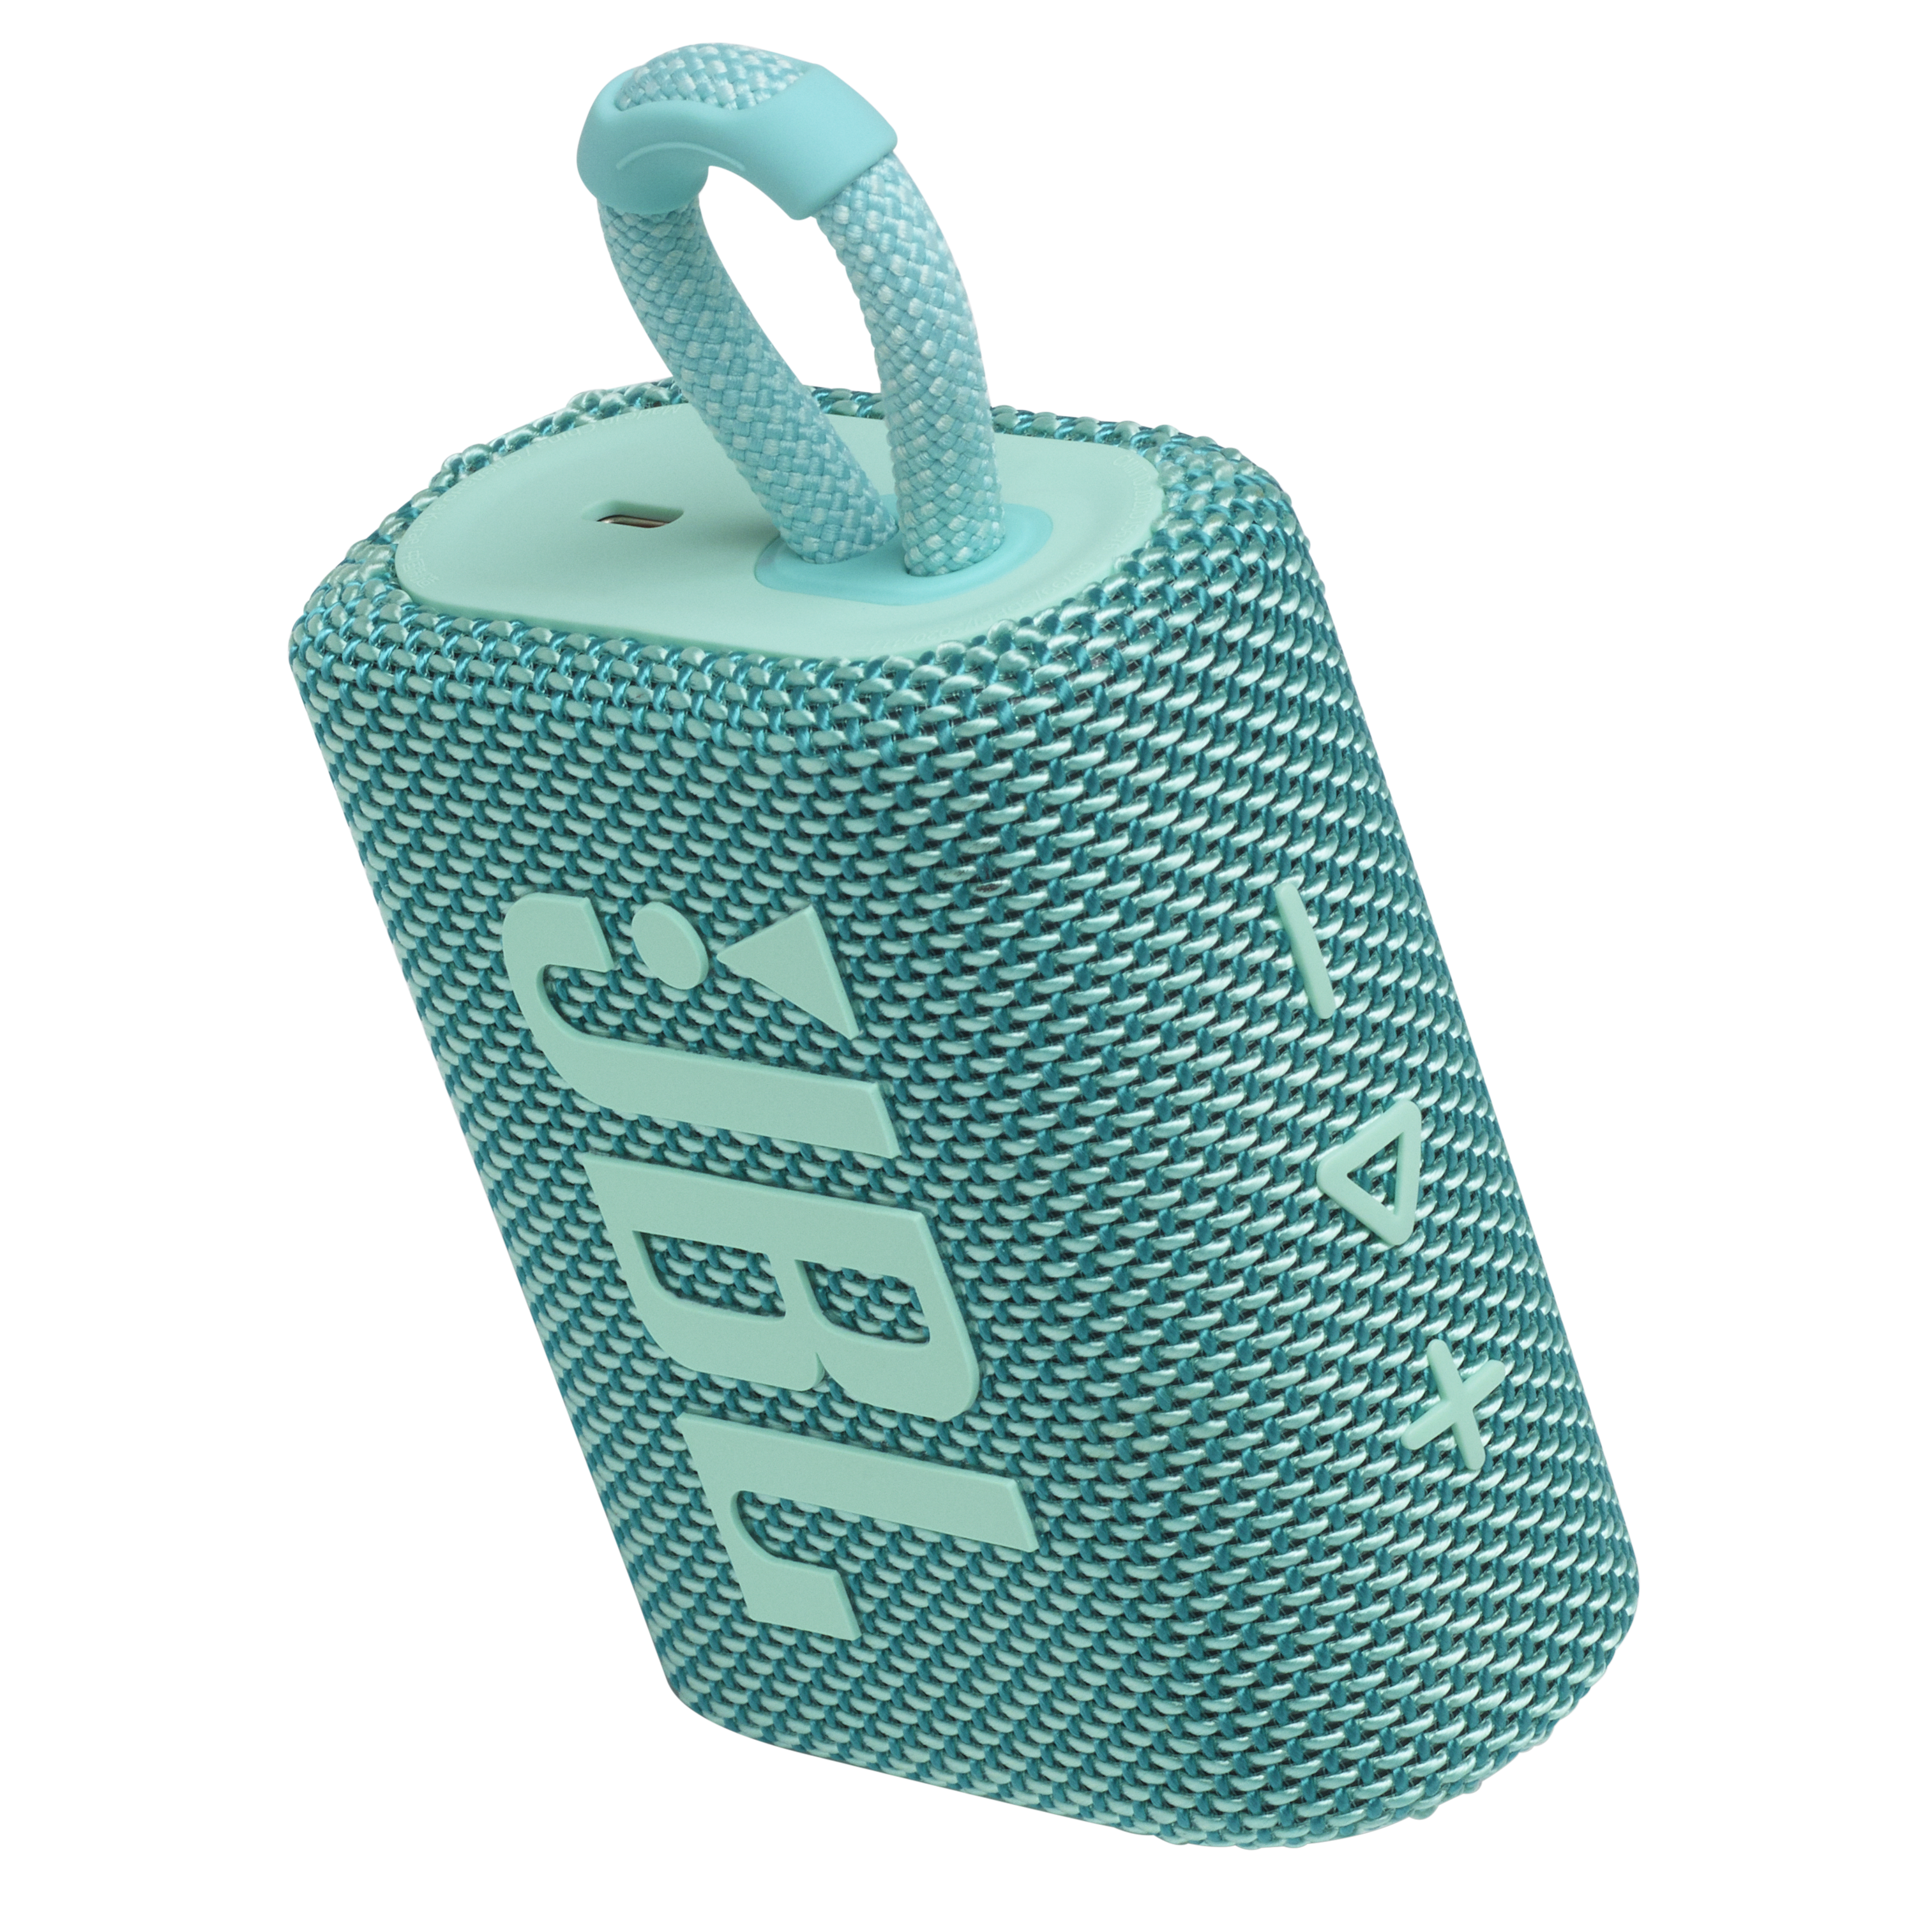 JBL GO 3 - Teal - Portable Waterproof Speaker - Detailshot 2